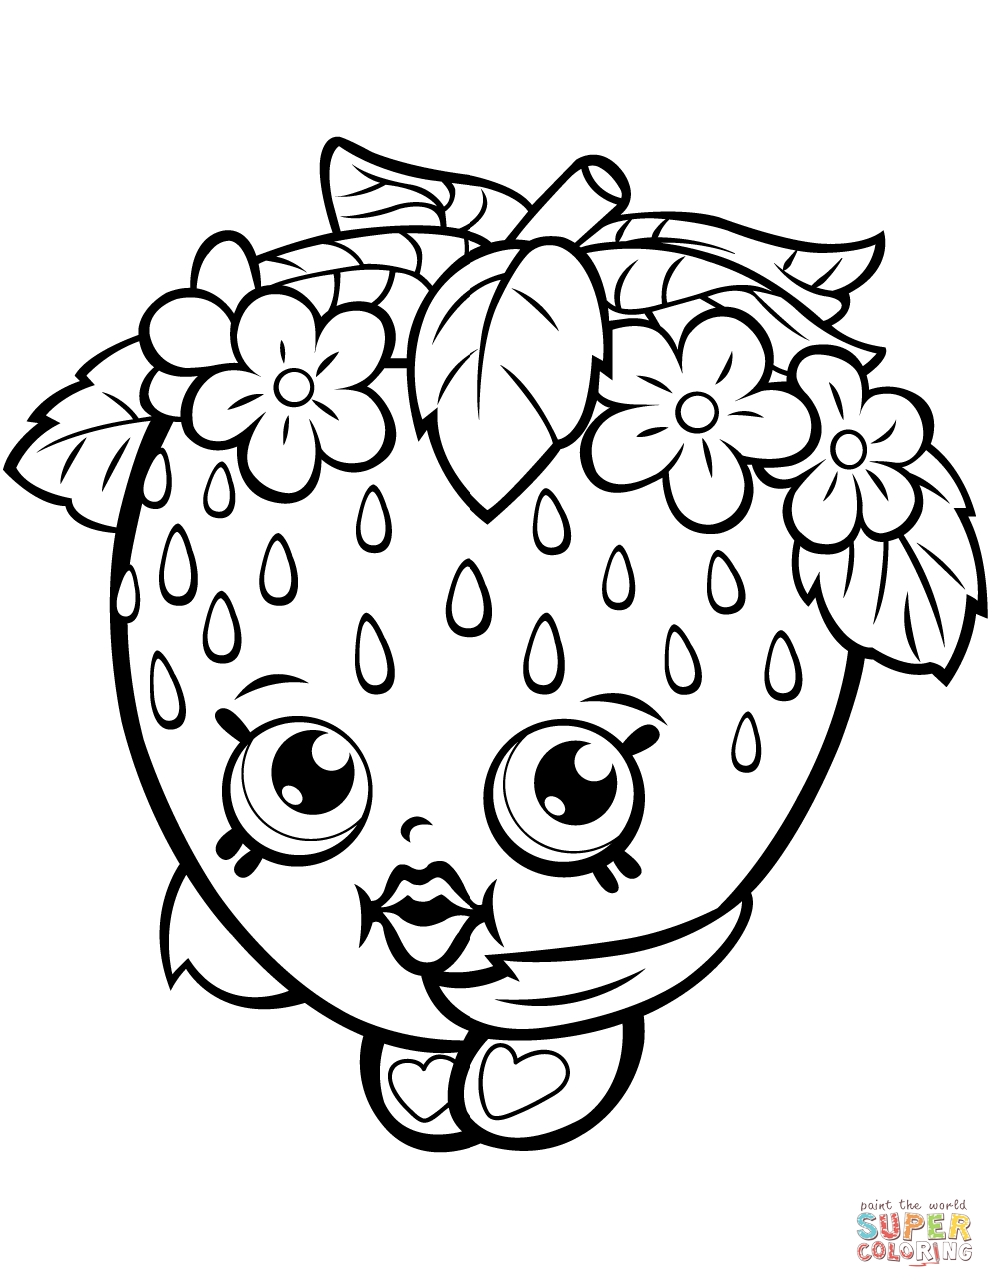 995x1288 Shopkins Strawberry Coloring Pages Archives